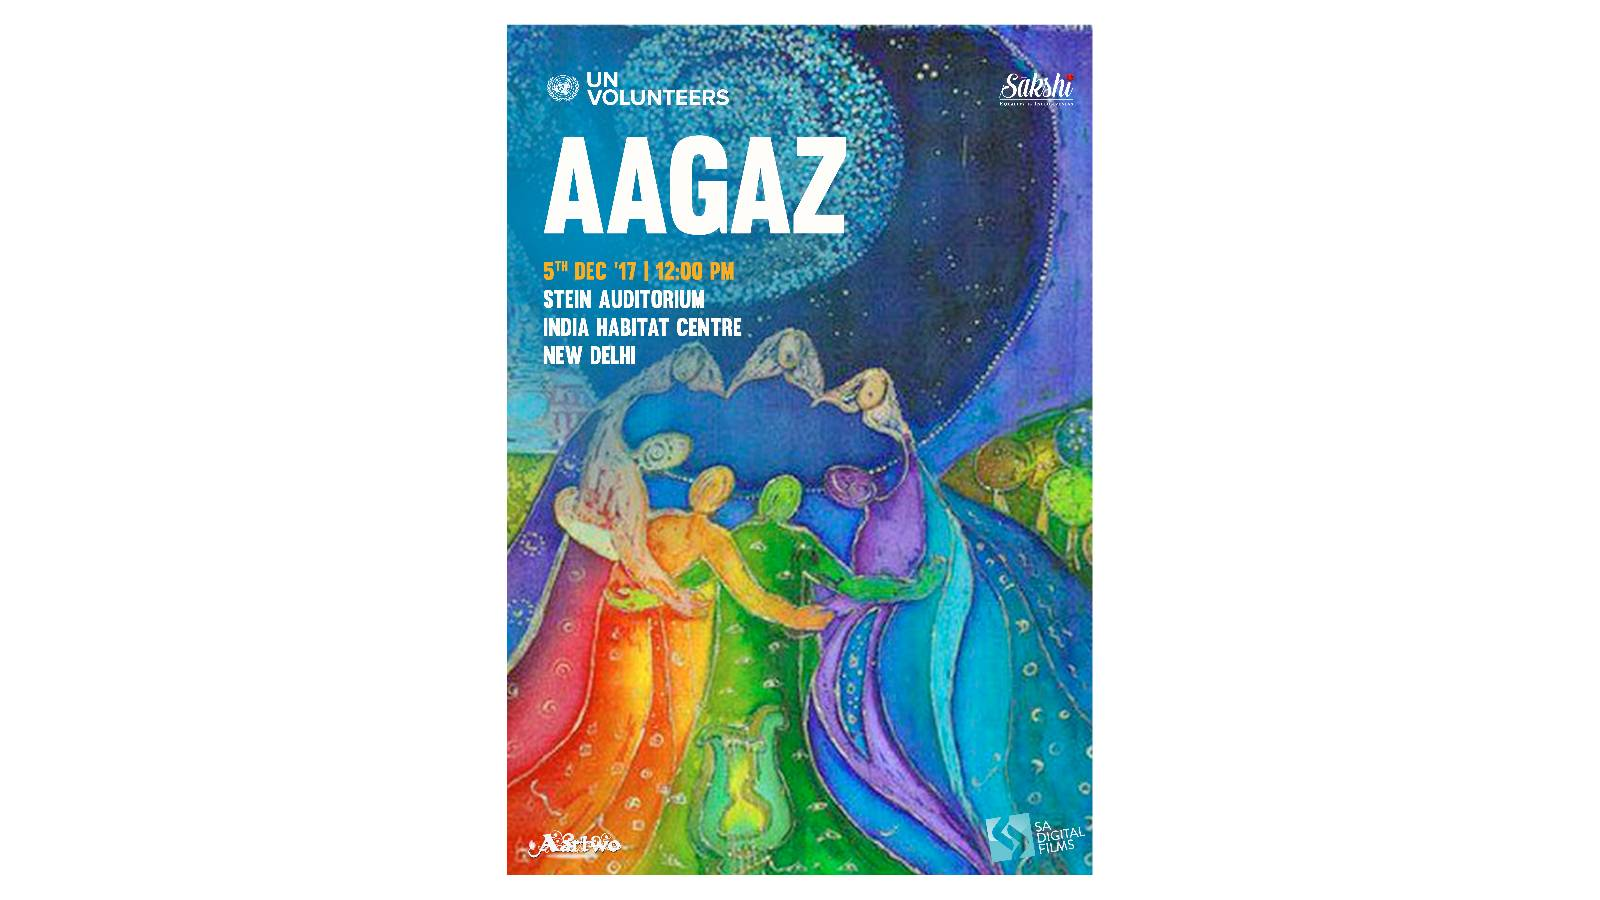 #StageForChange - Aagaz